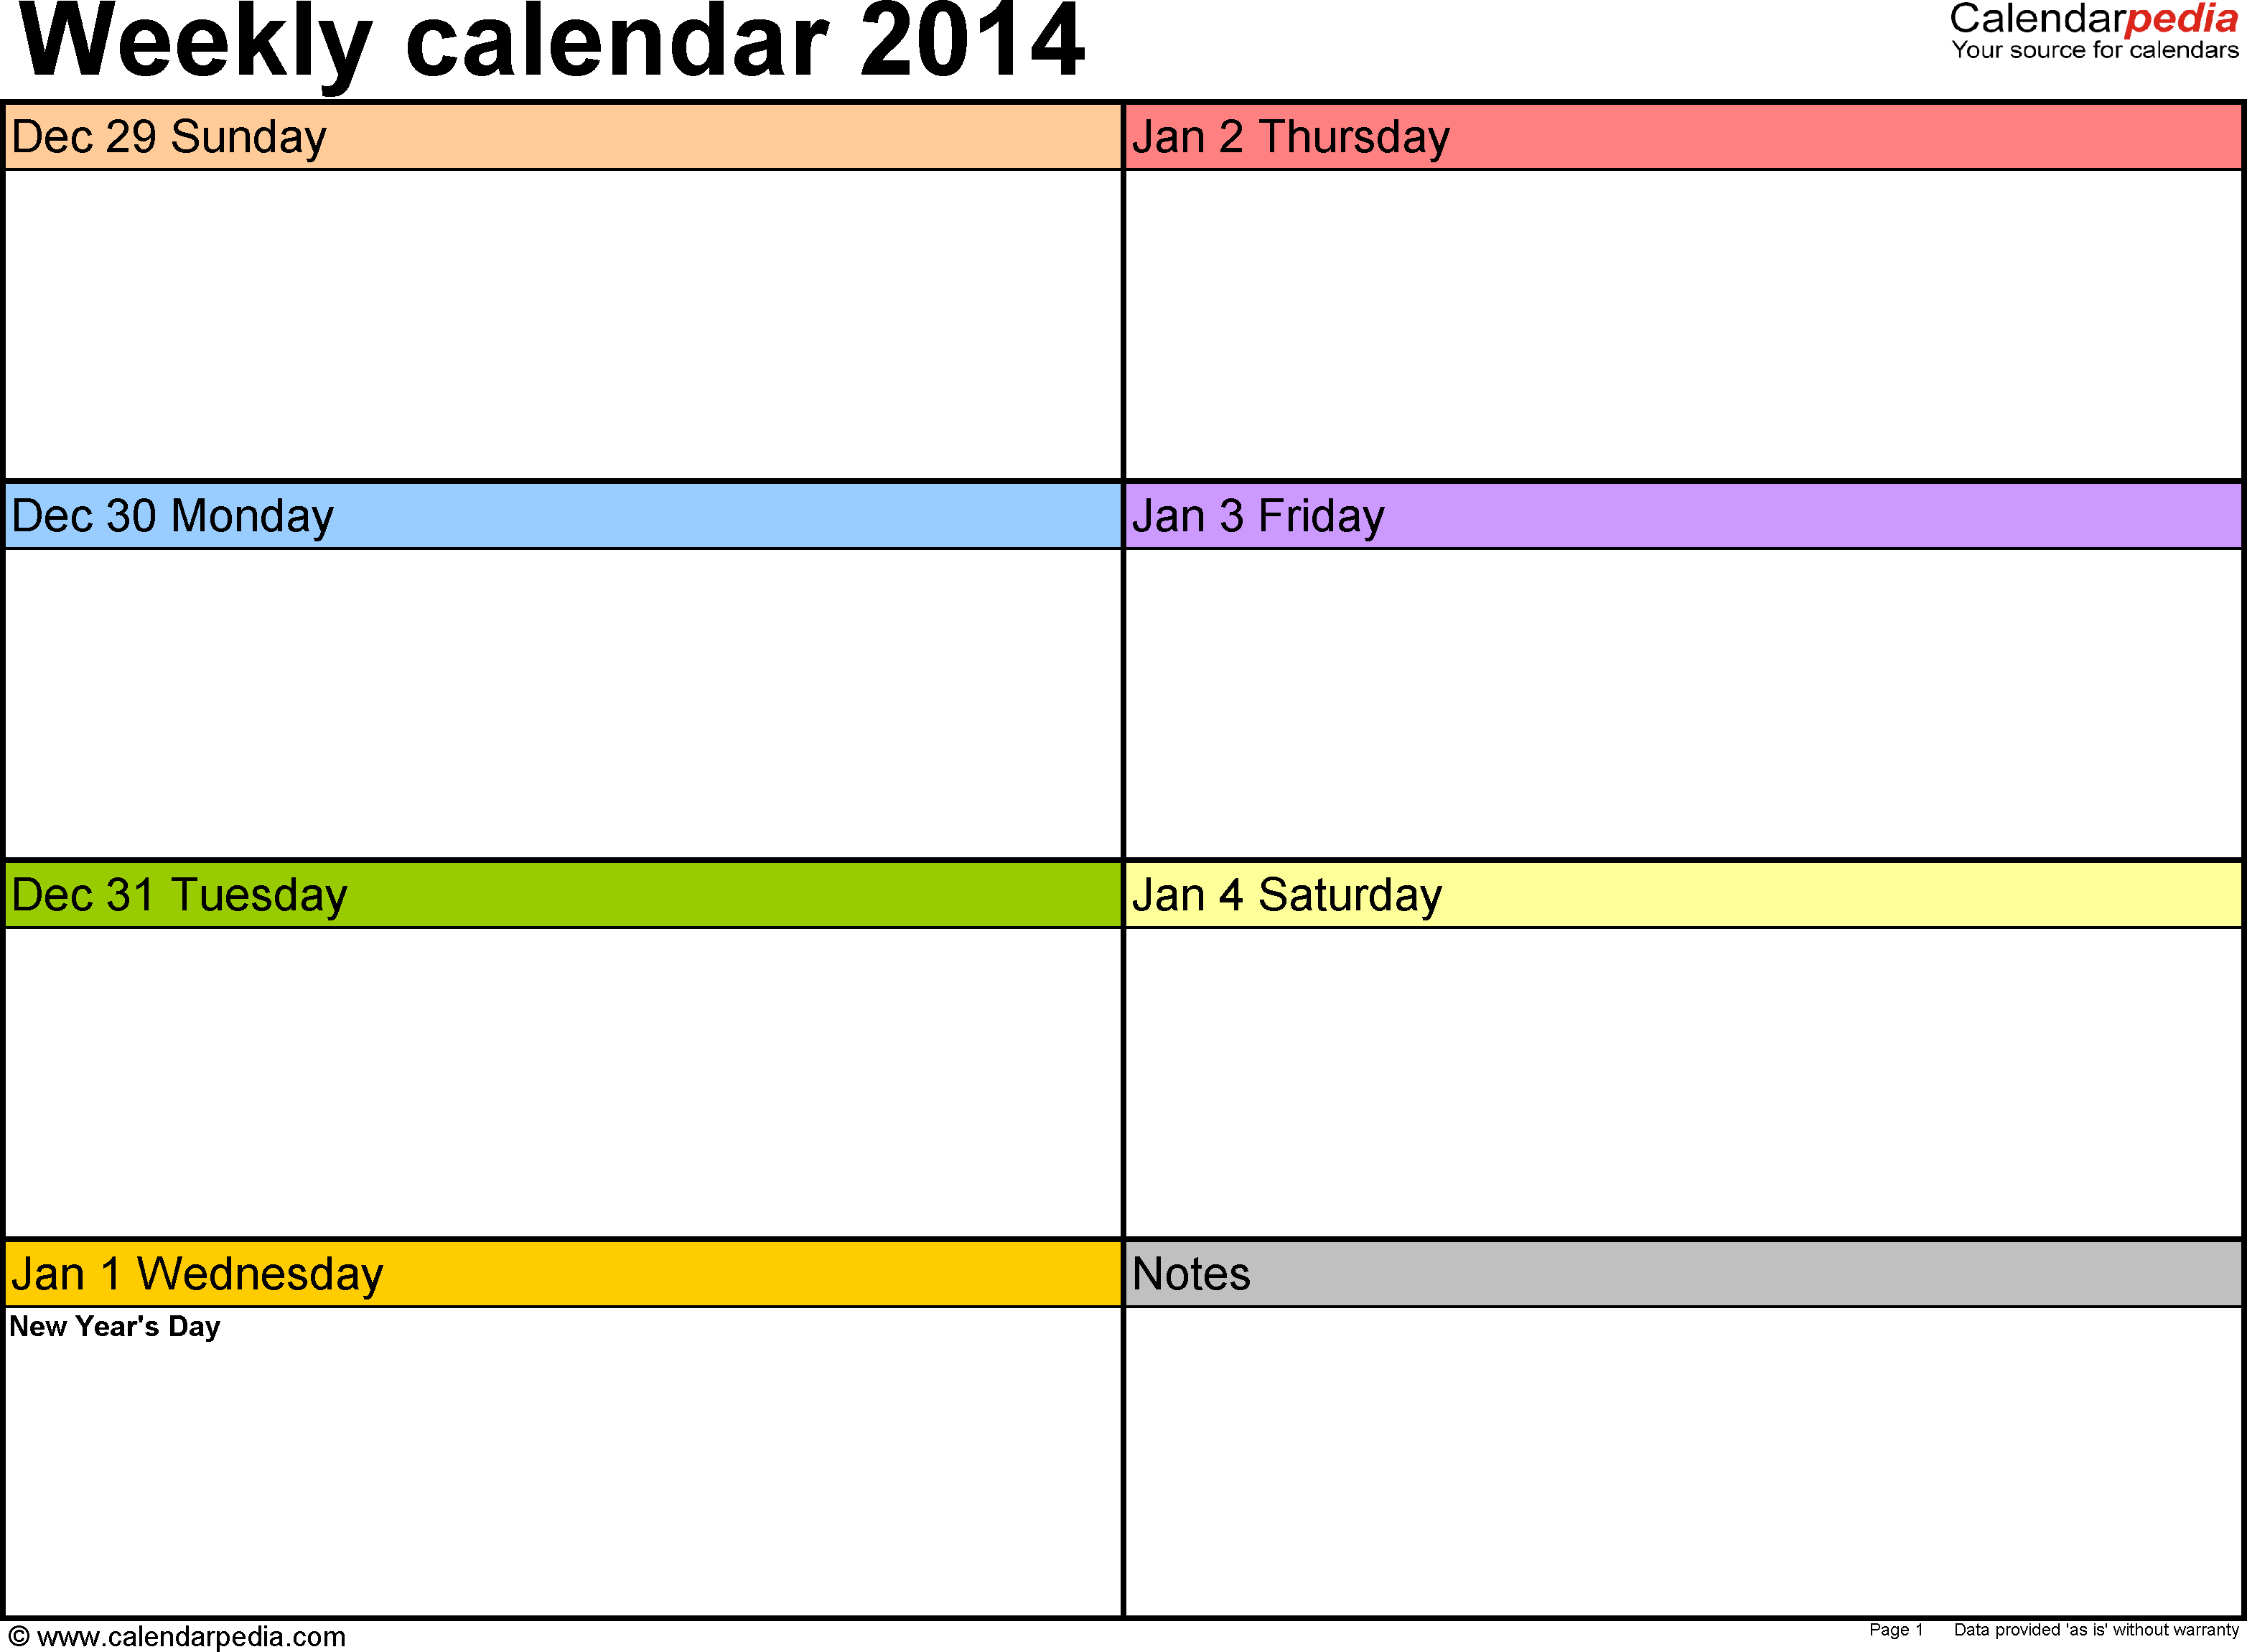 Weekly Calendar 2014 For Word - 4 Free Printable Templates throughout Kid Days Of The Week Calendar Template